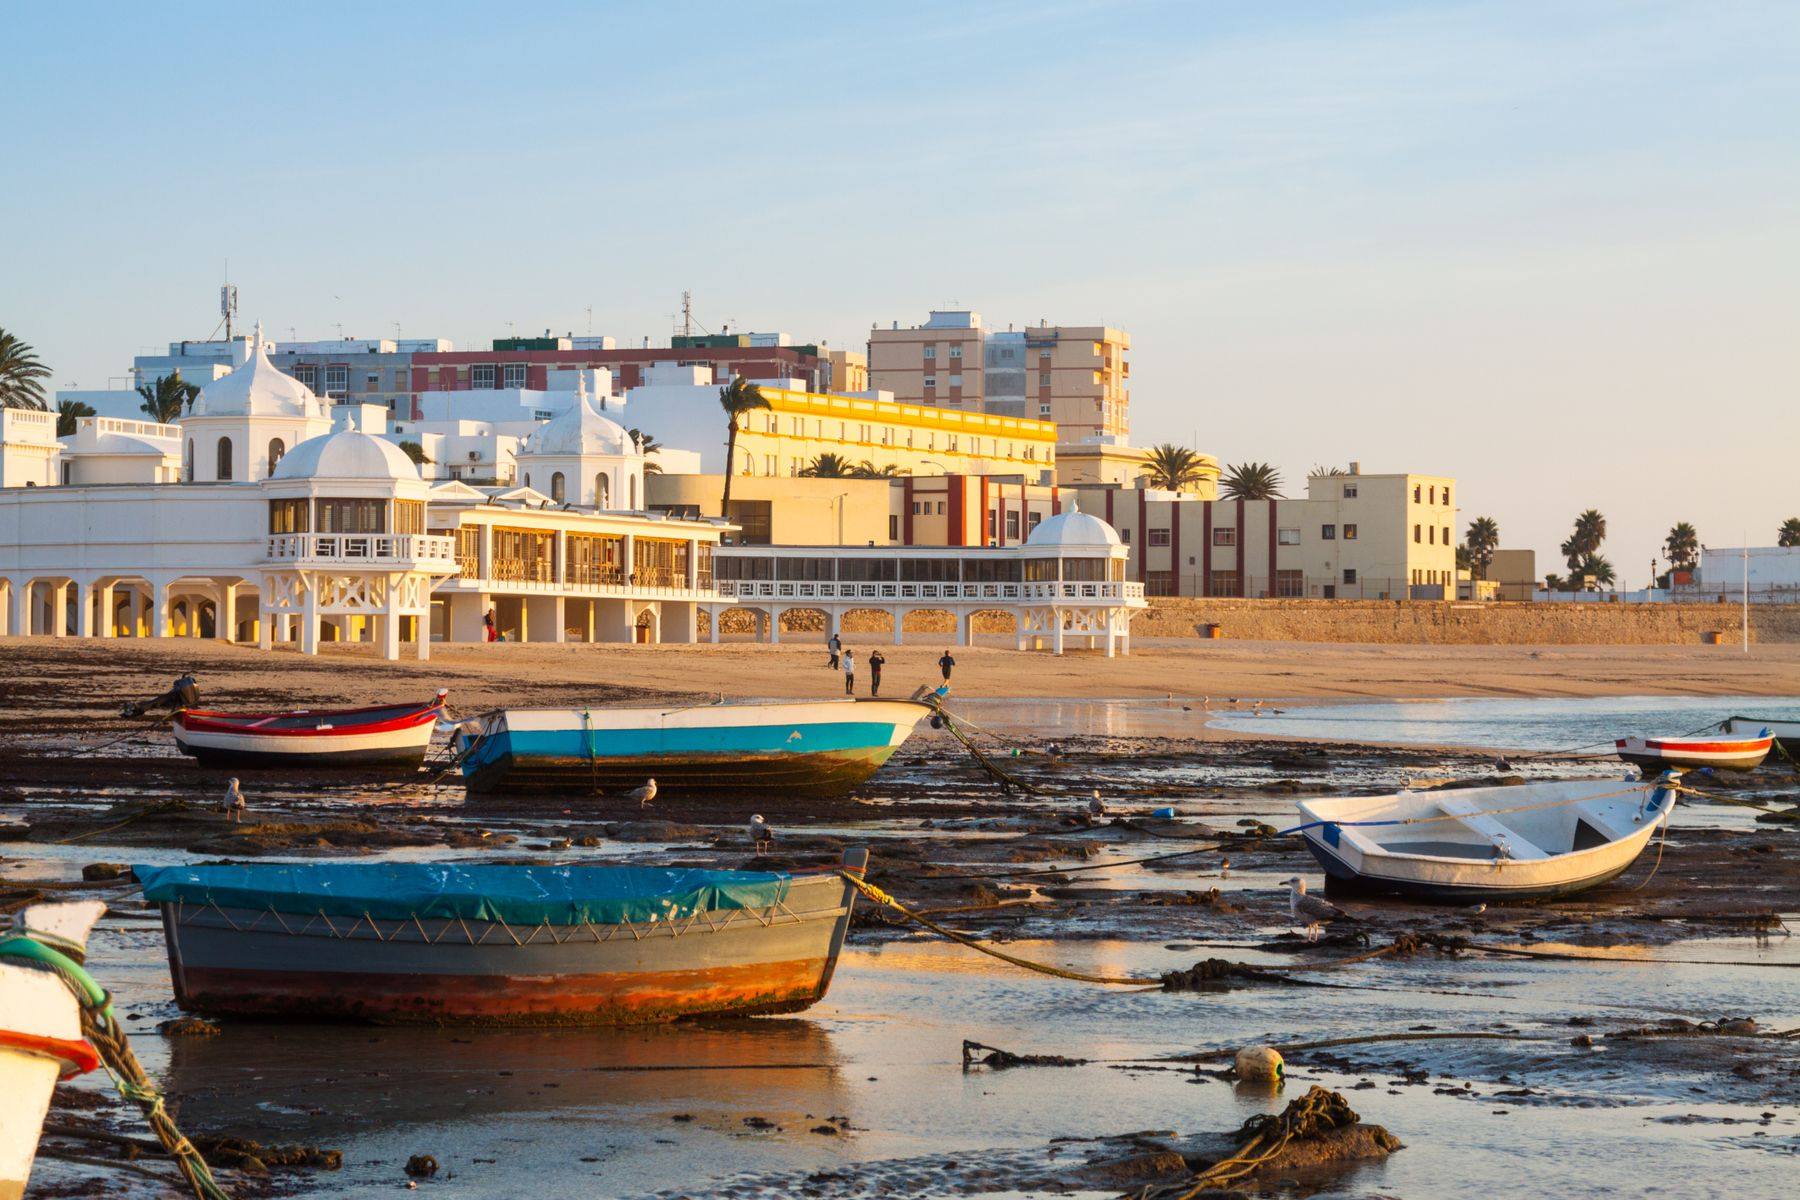 Colourful boats in Cadiz, Andalusia, Spain - one of the best holiday destinations in the Mediterranean